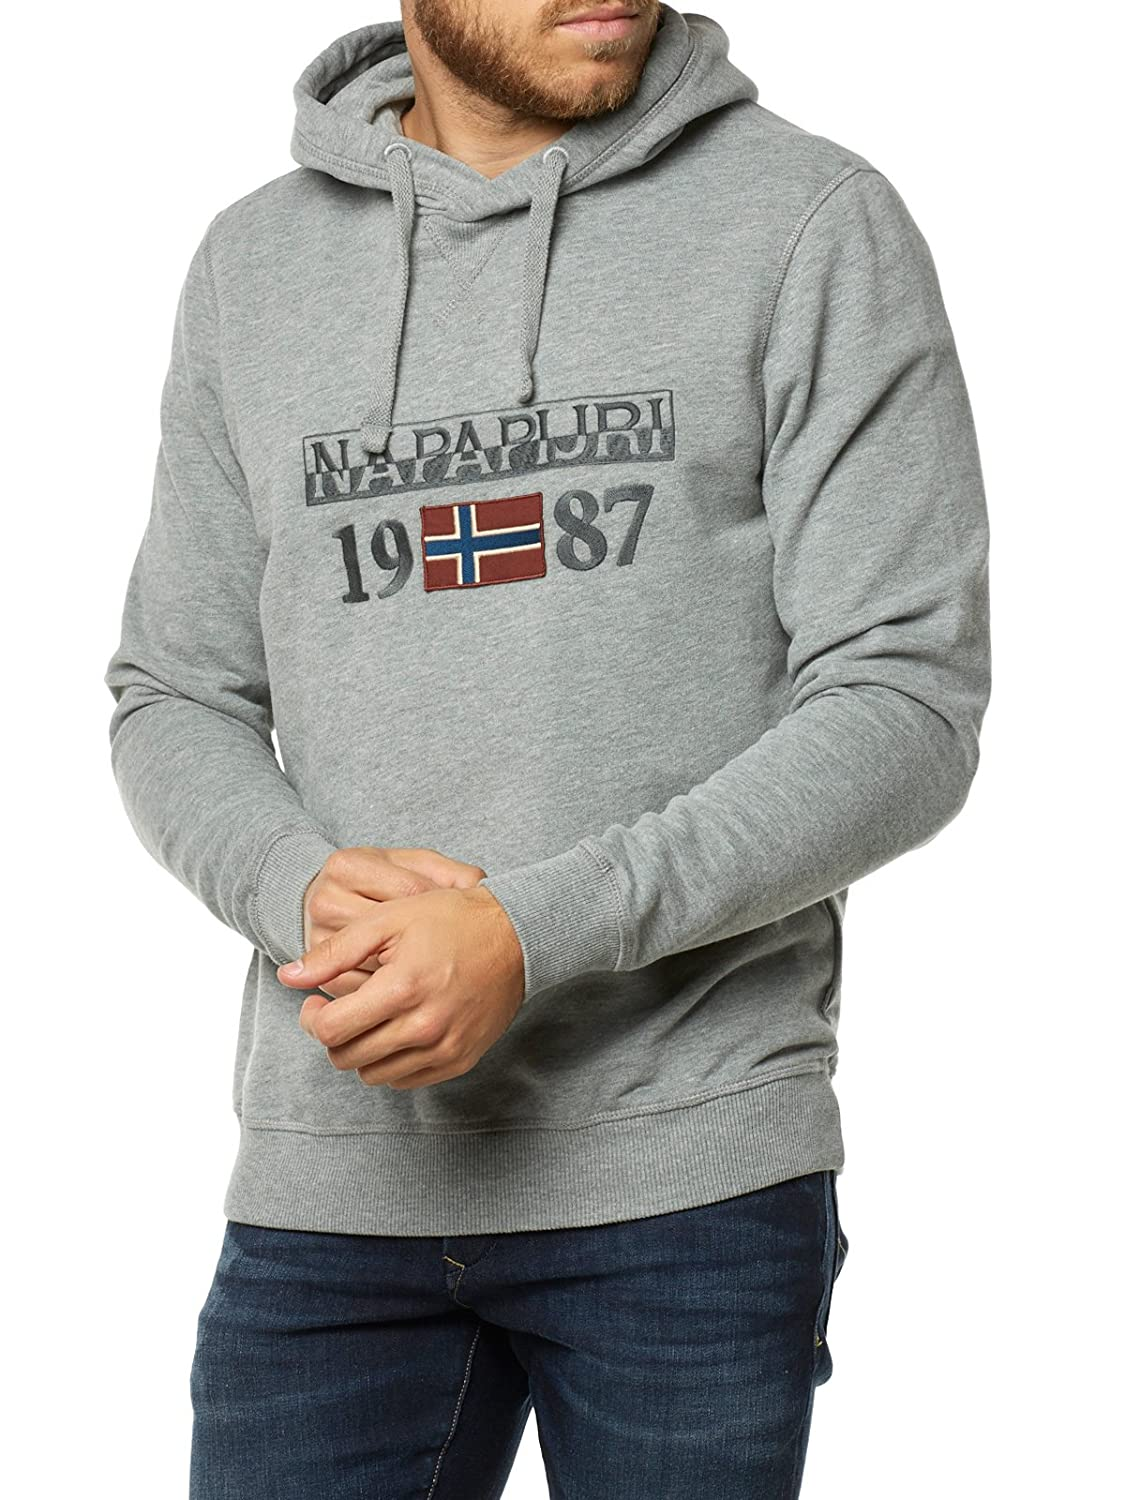 gris 3XL Napapijri Berthow Sweat-Shirt Homme